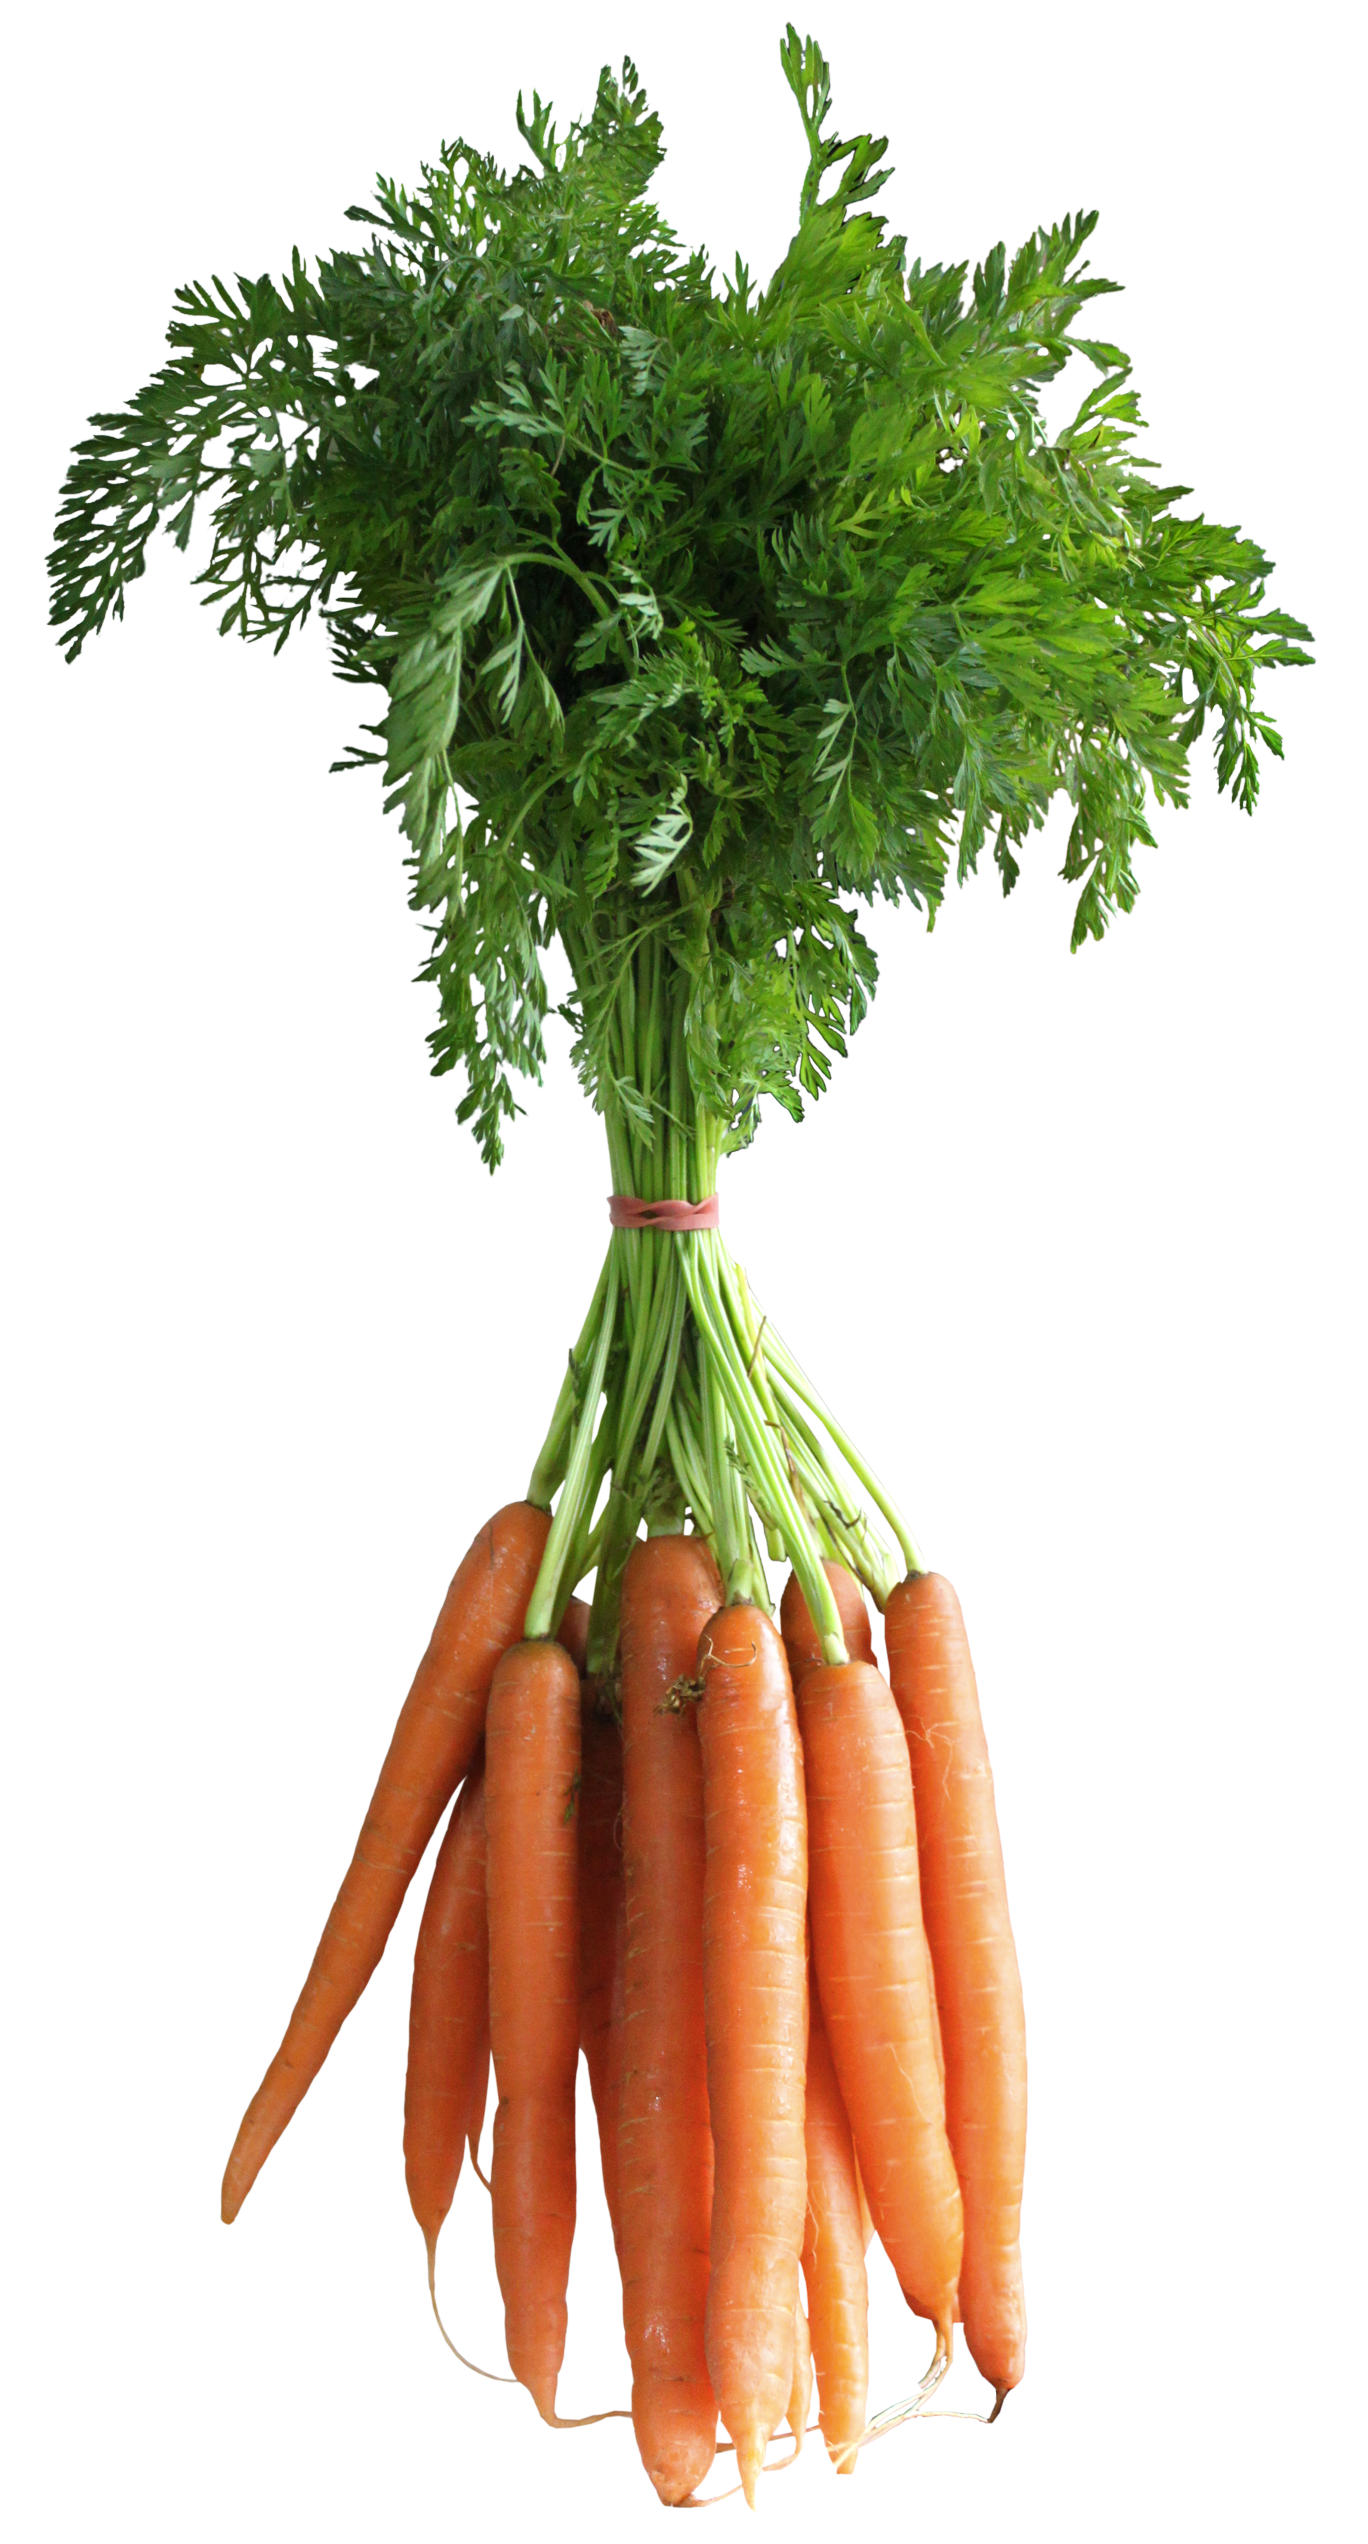 Weight clipart transparent background. Carrots png picture gallery